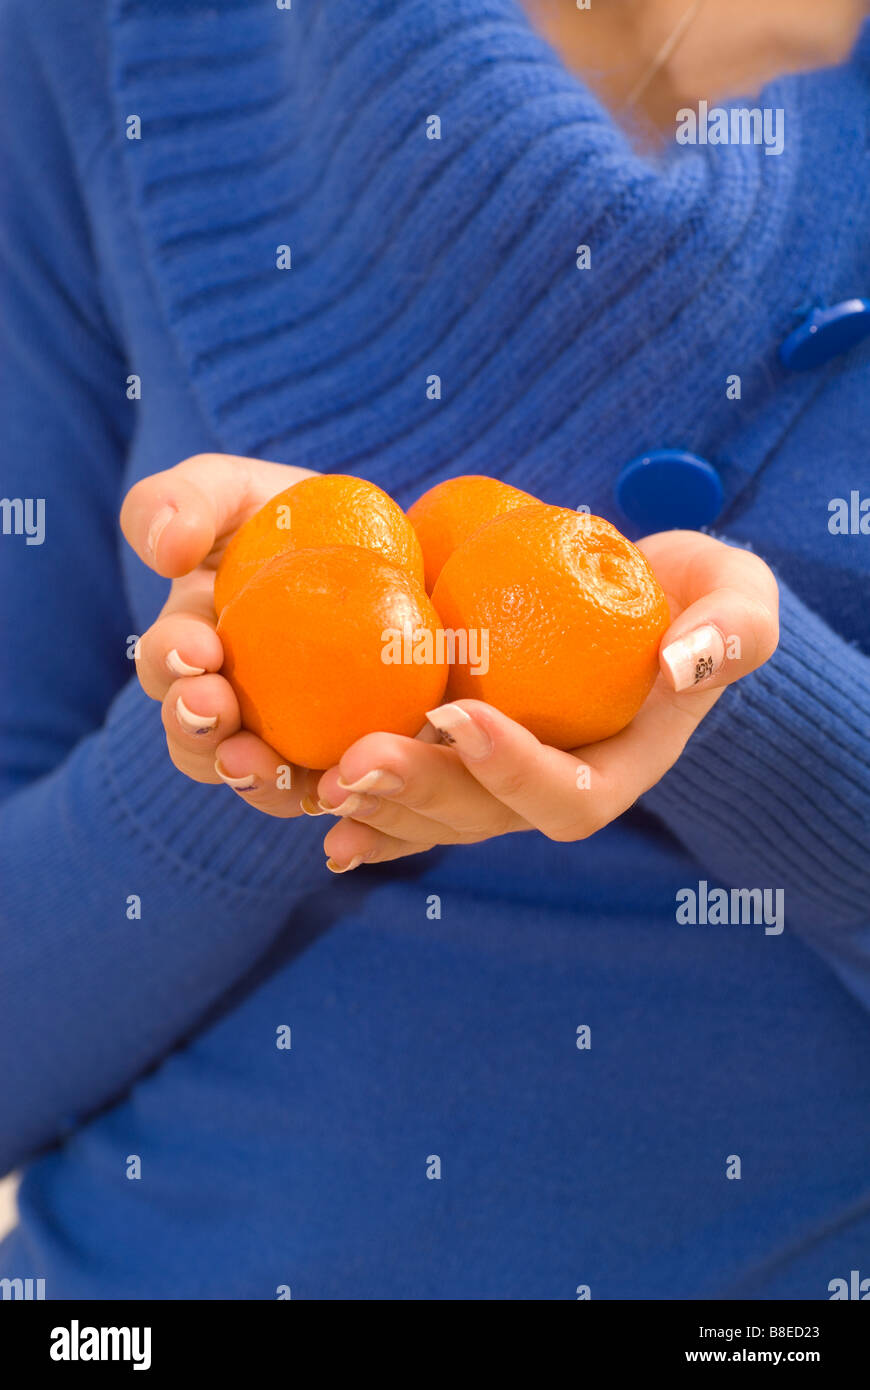 Close up of woman's hands holding mandarin fruits - Stock Image